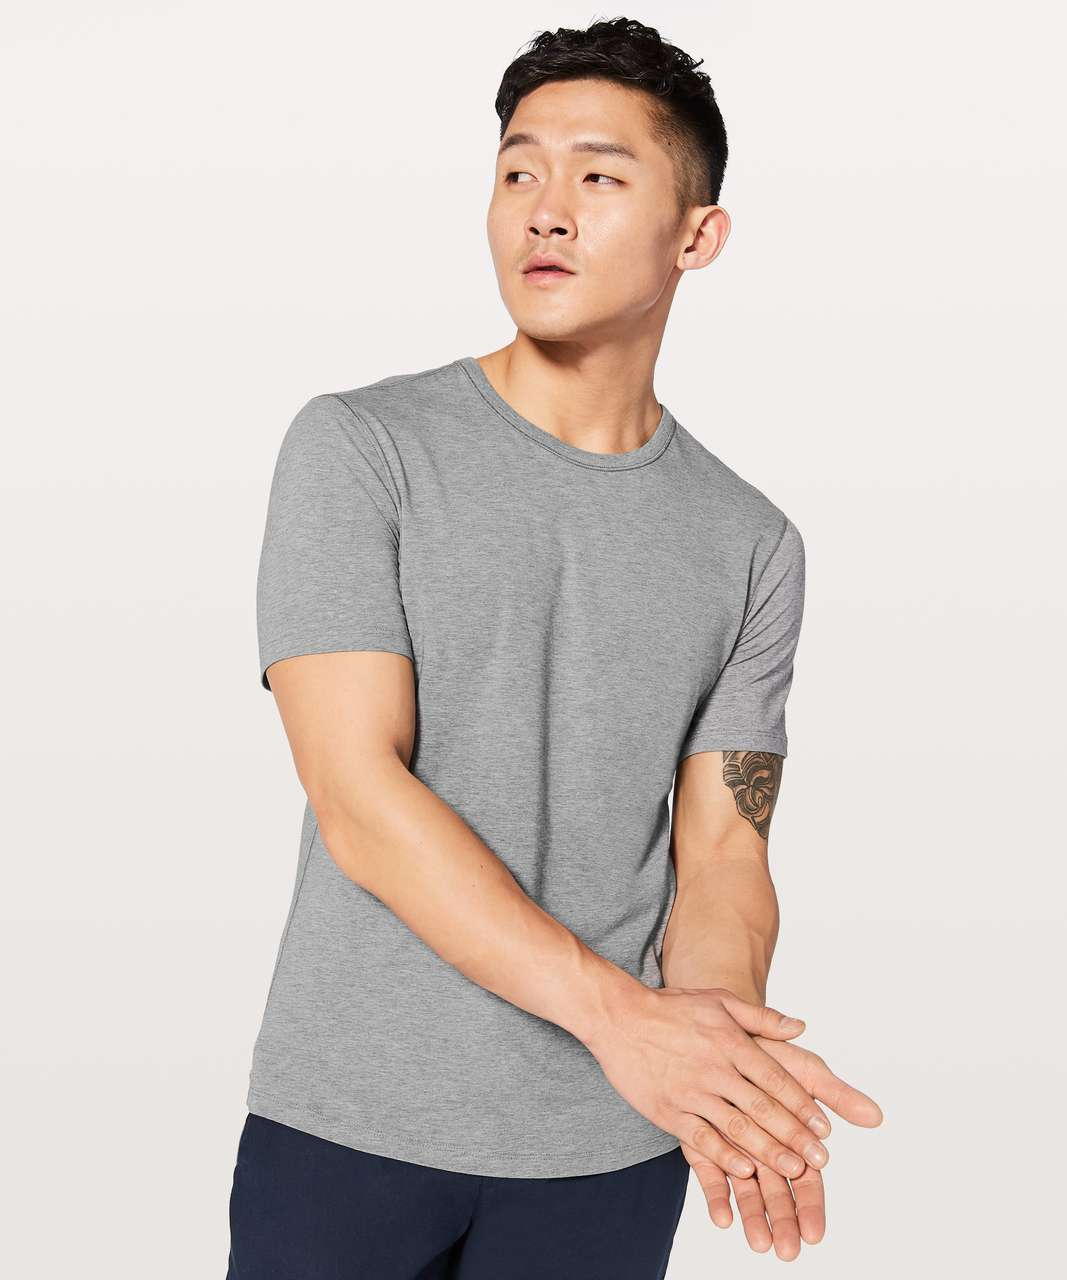 Lululemon 5 Year Basic Tee *Updated Fit - Heathered Medium Grey